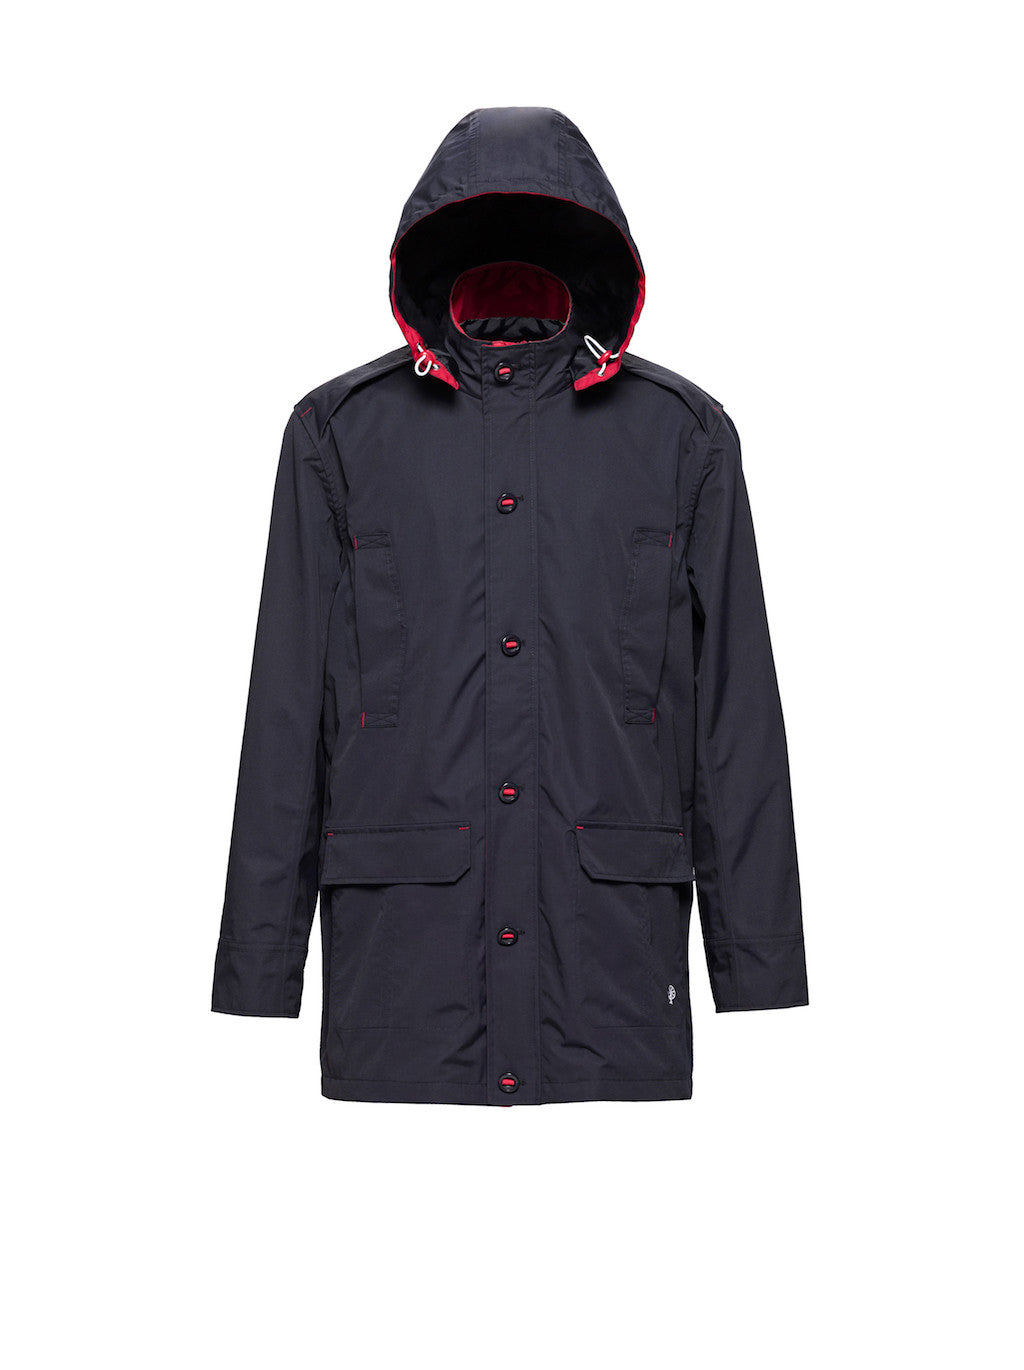 Millstrand Co. Bruyn All-Weather Jacket in Navy, Brick Red Trims